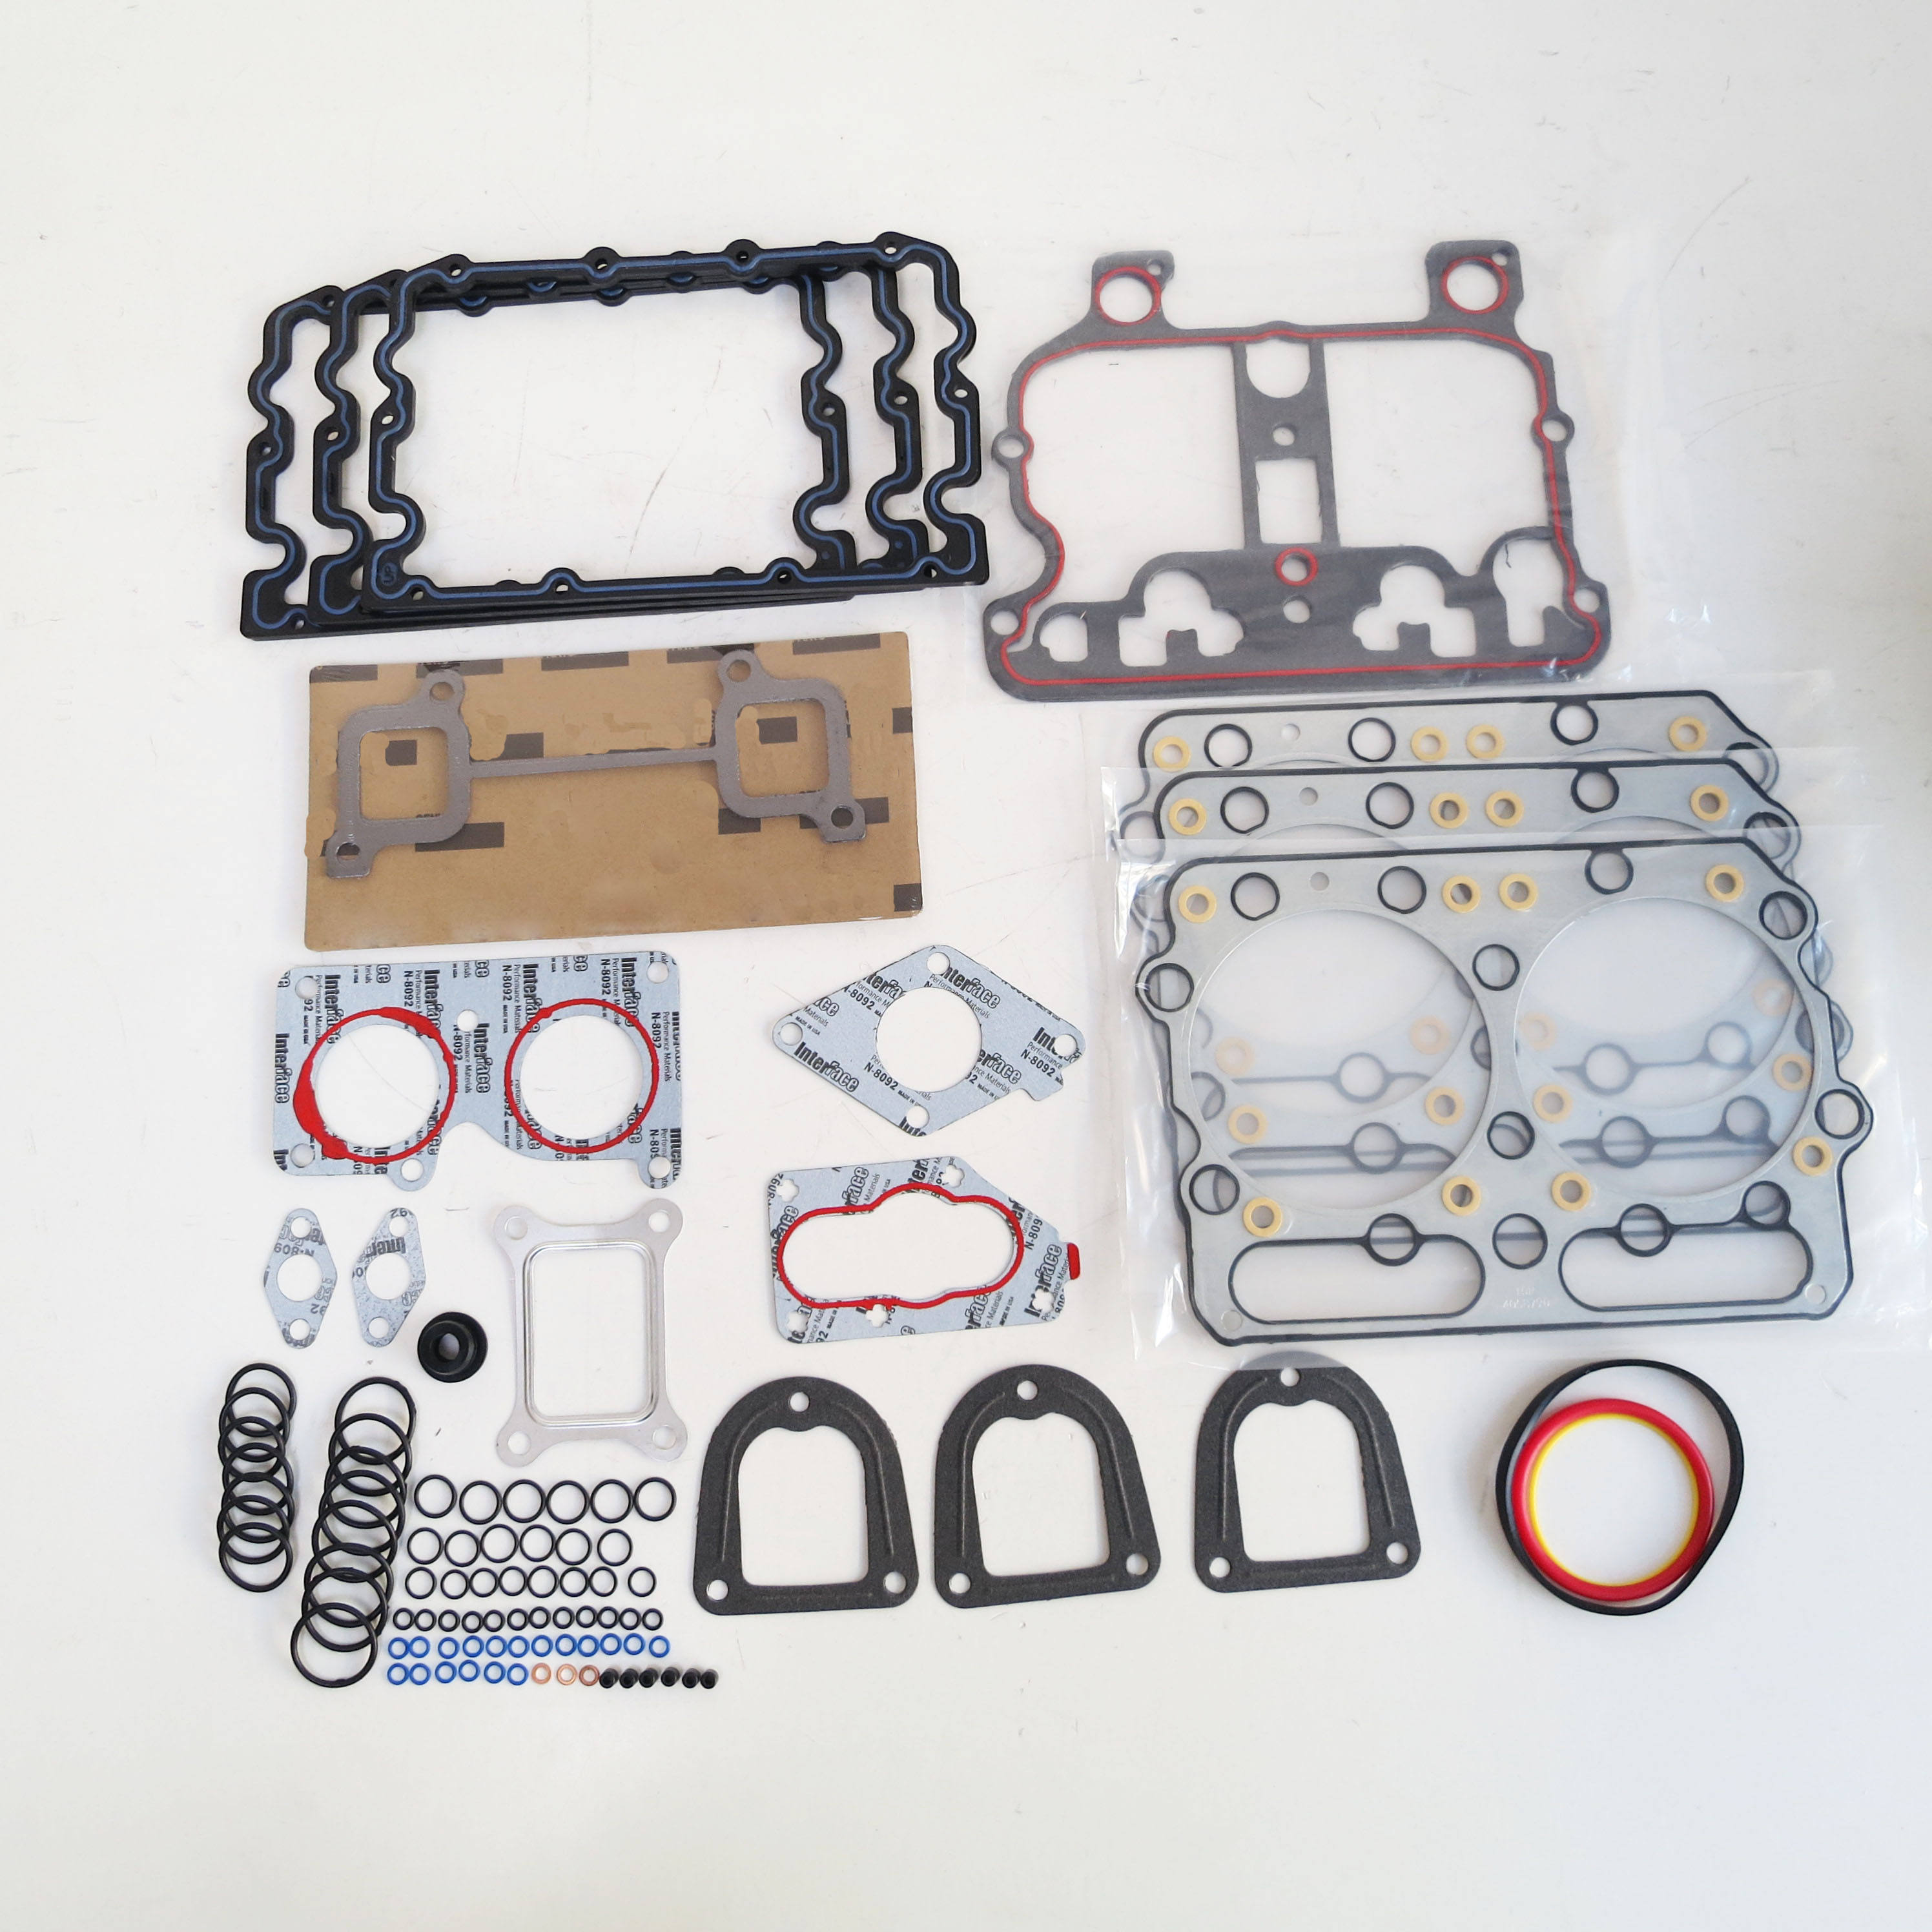 N14 Repair gasket kit upper and lower 4089371 cylinder head gasket kits for diesel truck engine